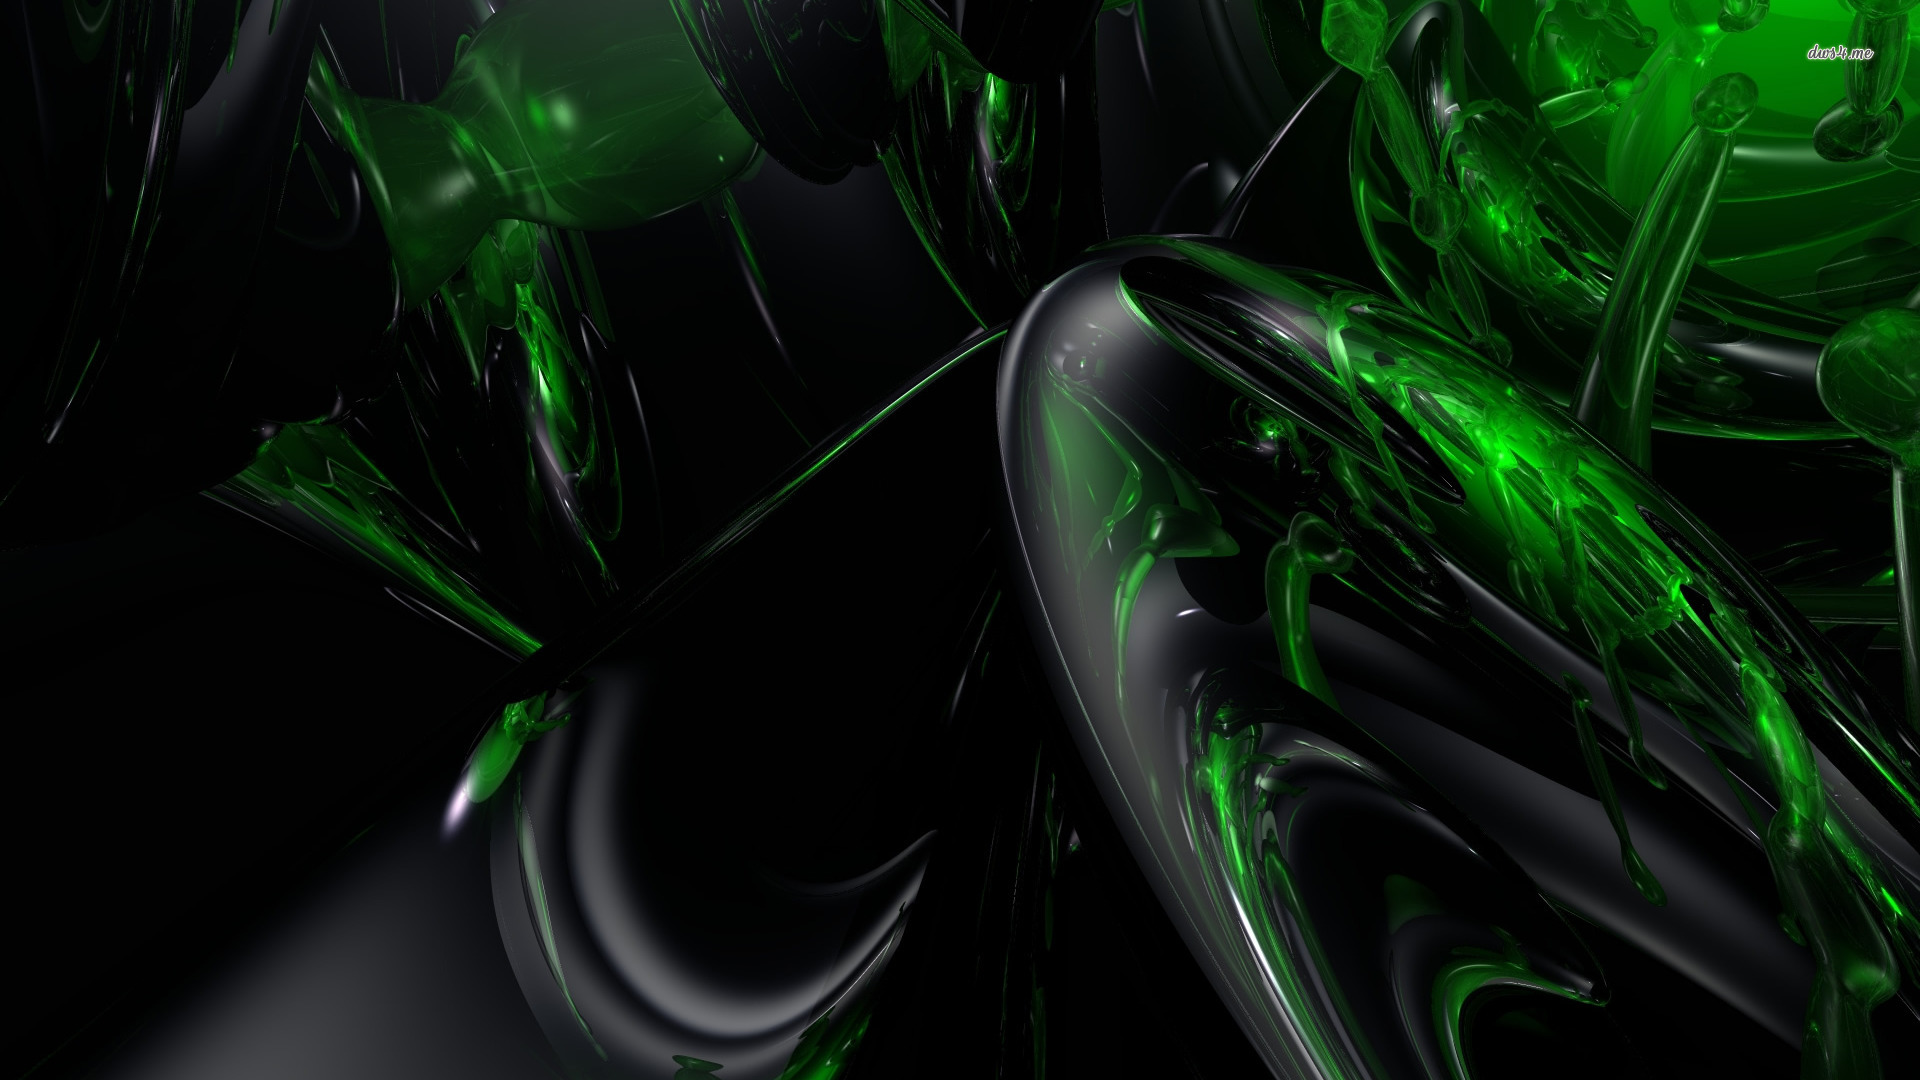 Green And Black Abstract Wallpaper 42 Wide Wallpaper ...